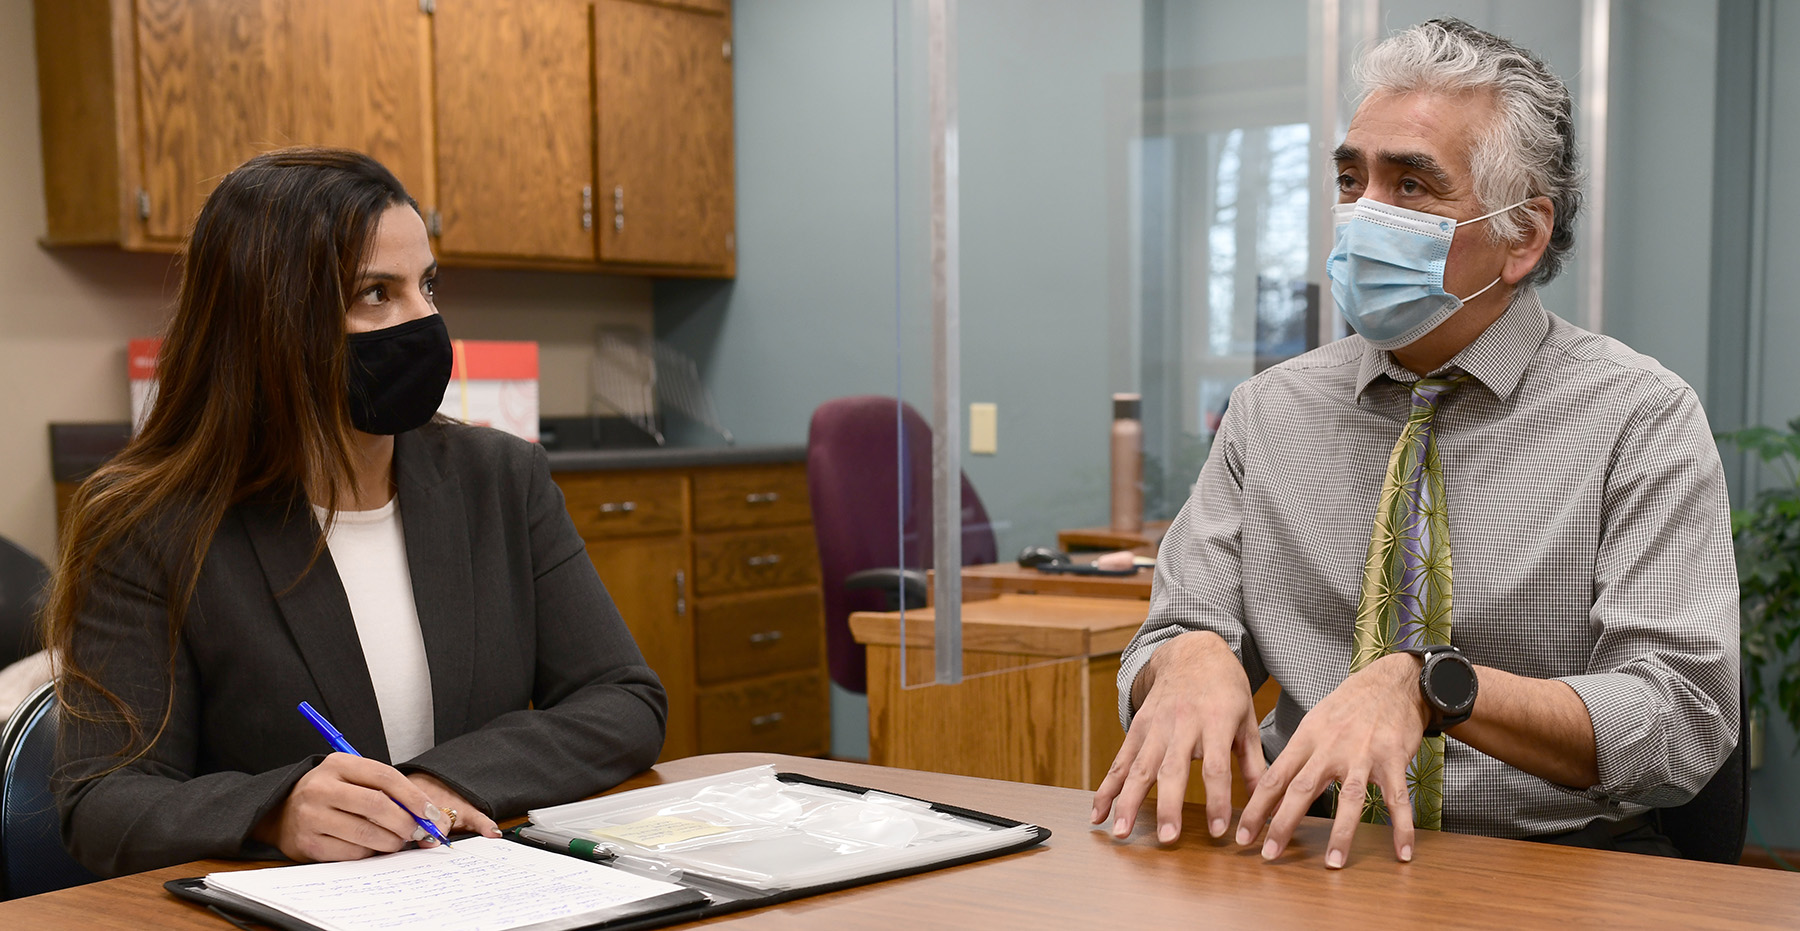 Two people at a table, wearing face masks, one gesturing with hands, other writing on paper